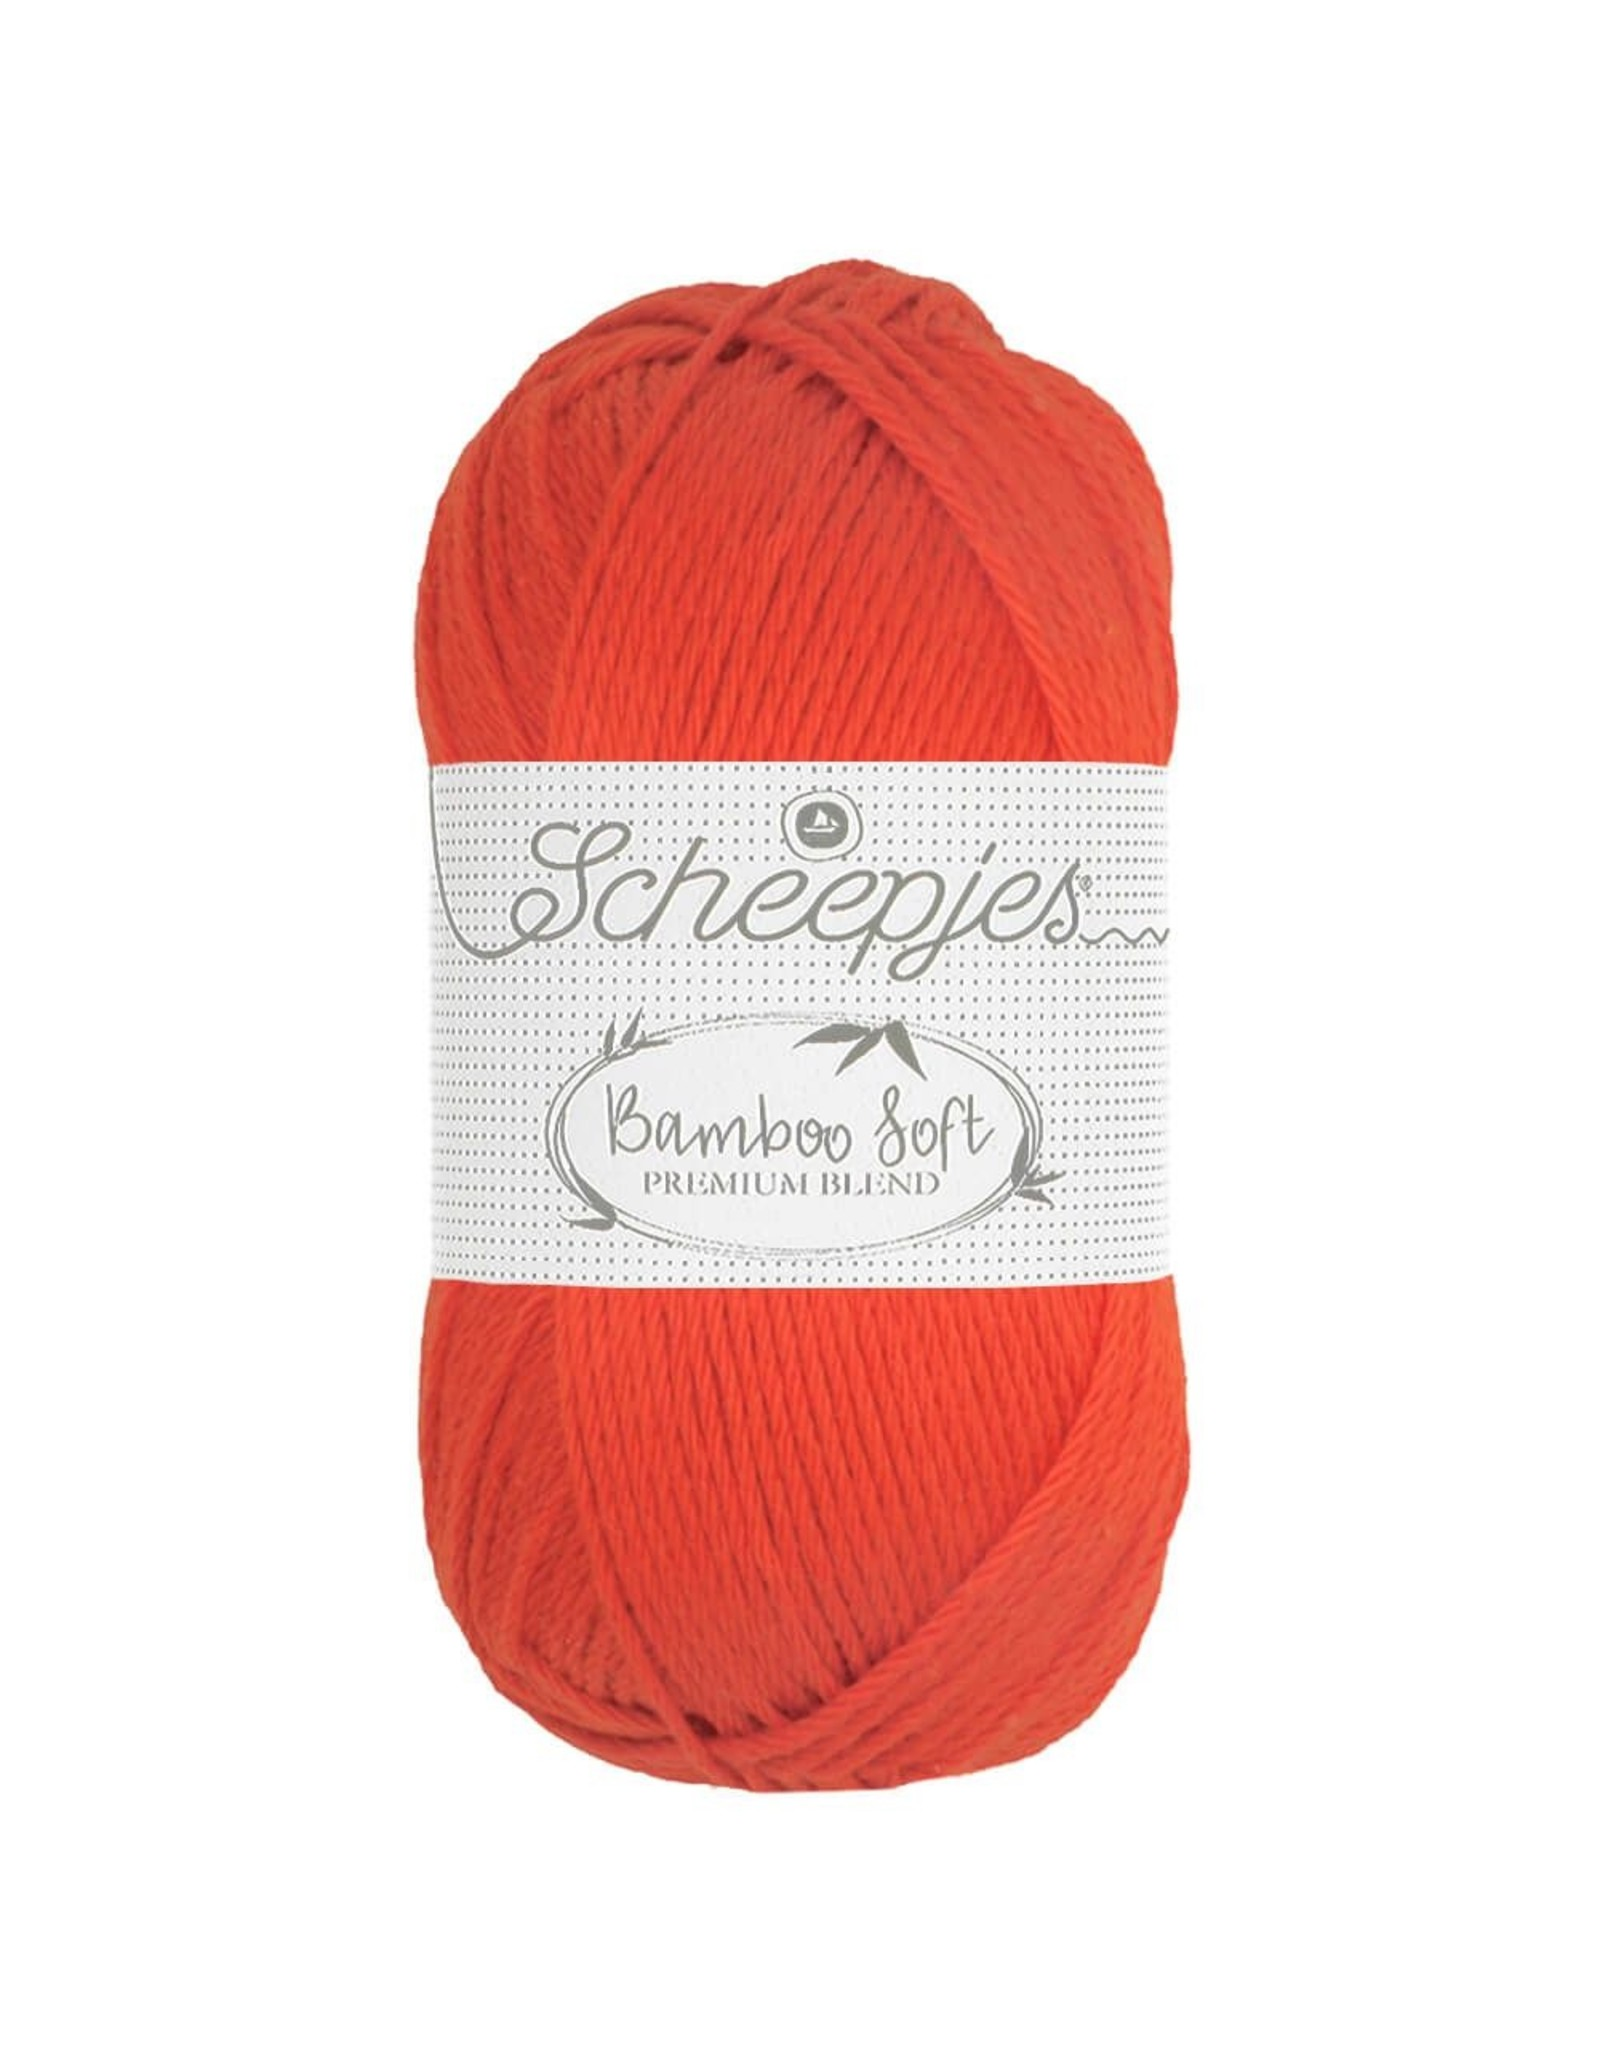 Scheepjes Scheepjes Bamboo Soft kleur 261 Regal Orange bundel 5 bollen x 50 gr.